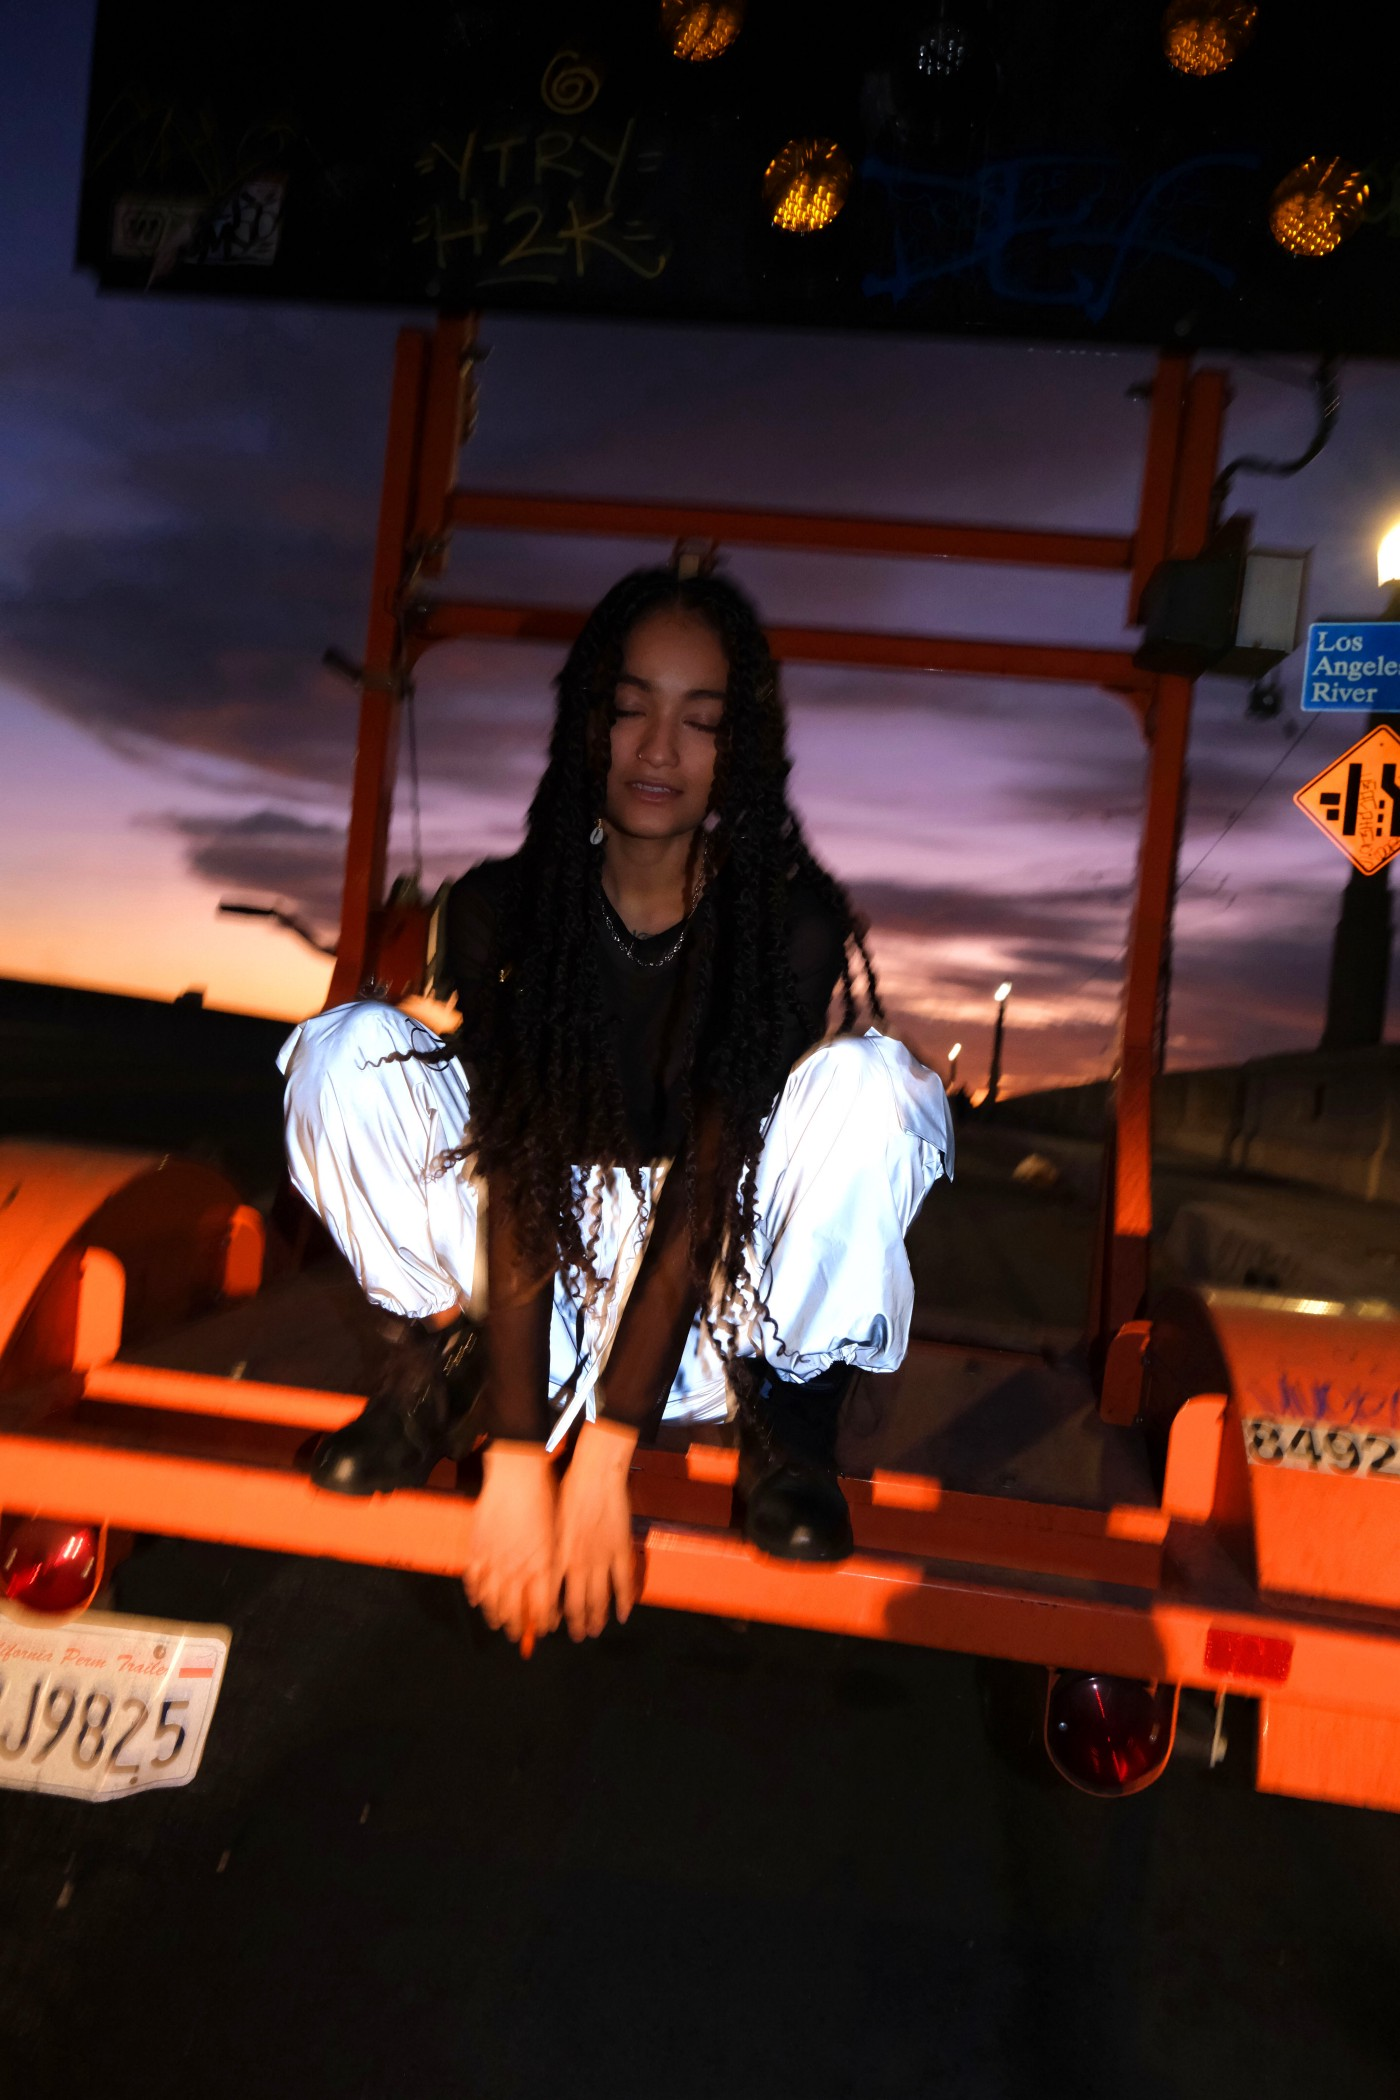 a girl with long hair in a low squat on top of what looks like the back of a trailer; her eyes are closed and she looks spaced out. She is wearing baggy jeans a long sleeved black shirt and high combat boots.